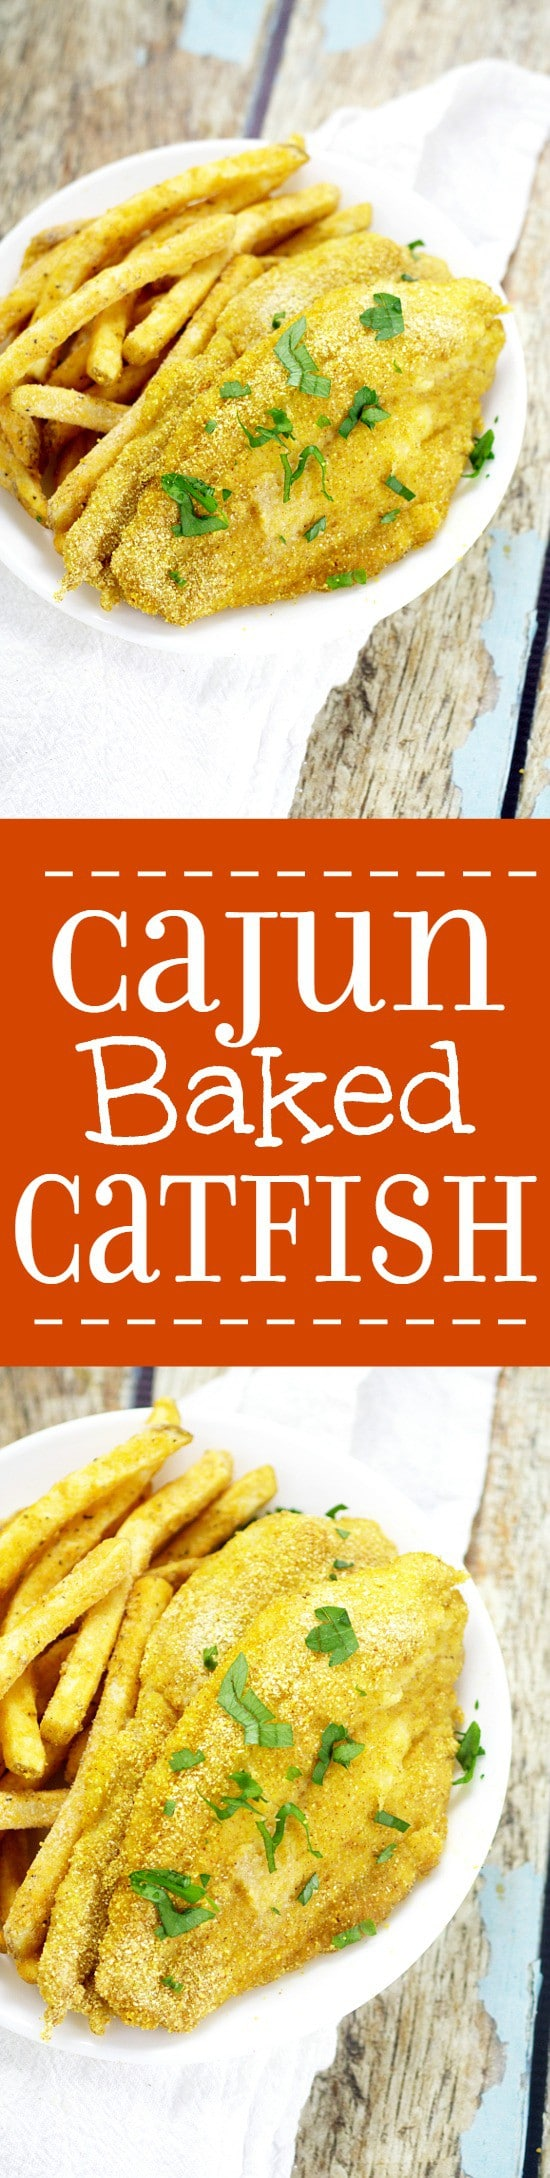 Crispy, spicy Cajun Baked Catfish can be made in just 30 minutes top to bottom for an easy family dinner recipe, and baked to golden, crispy perfection right in your oven. Wow! Yum!